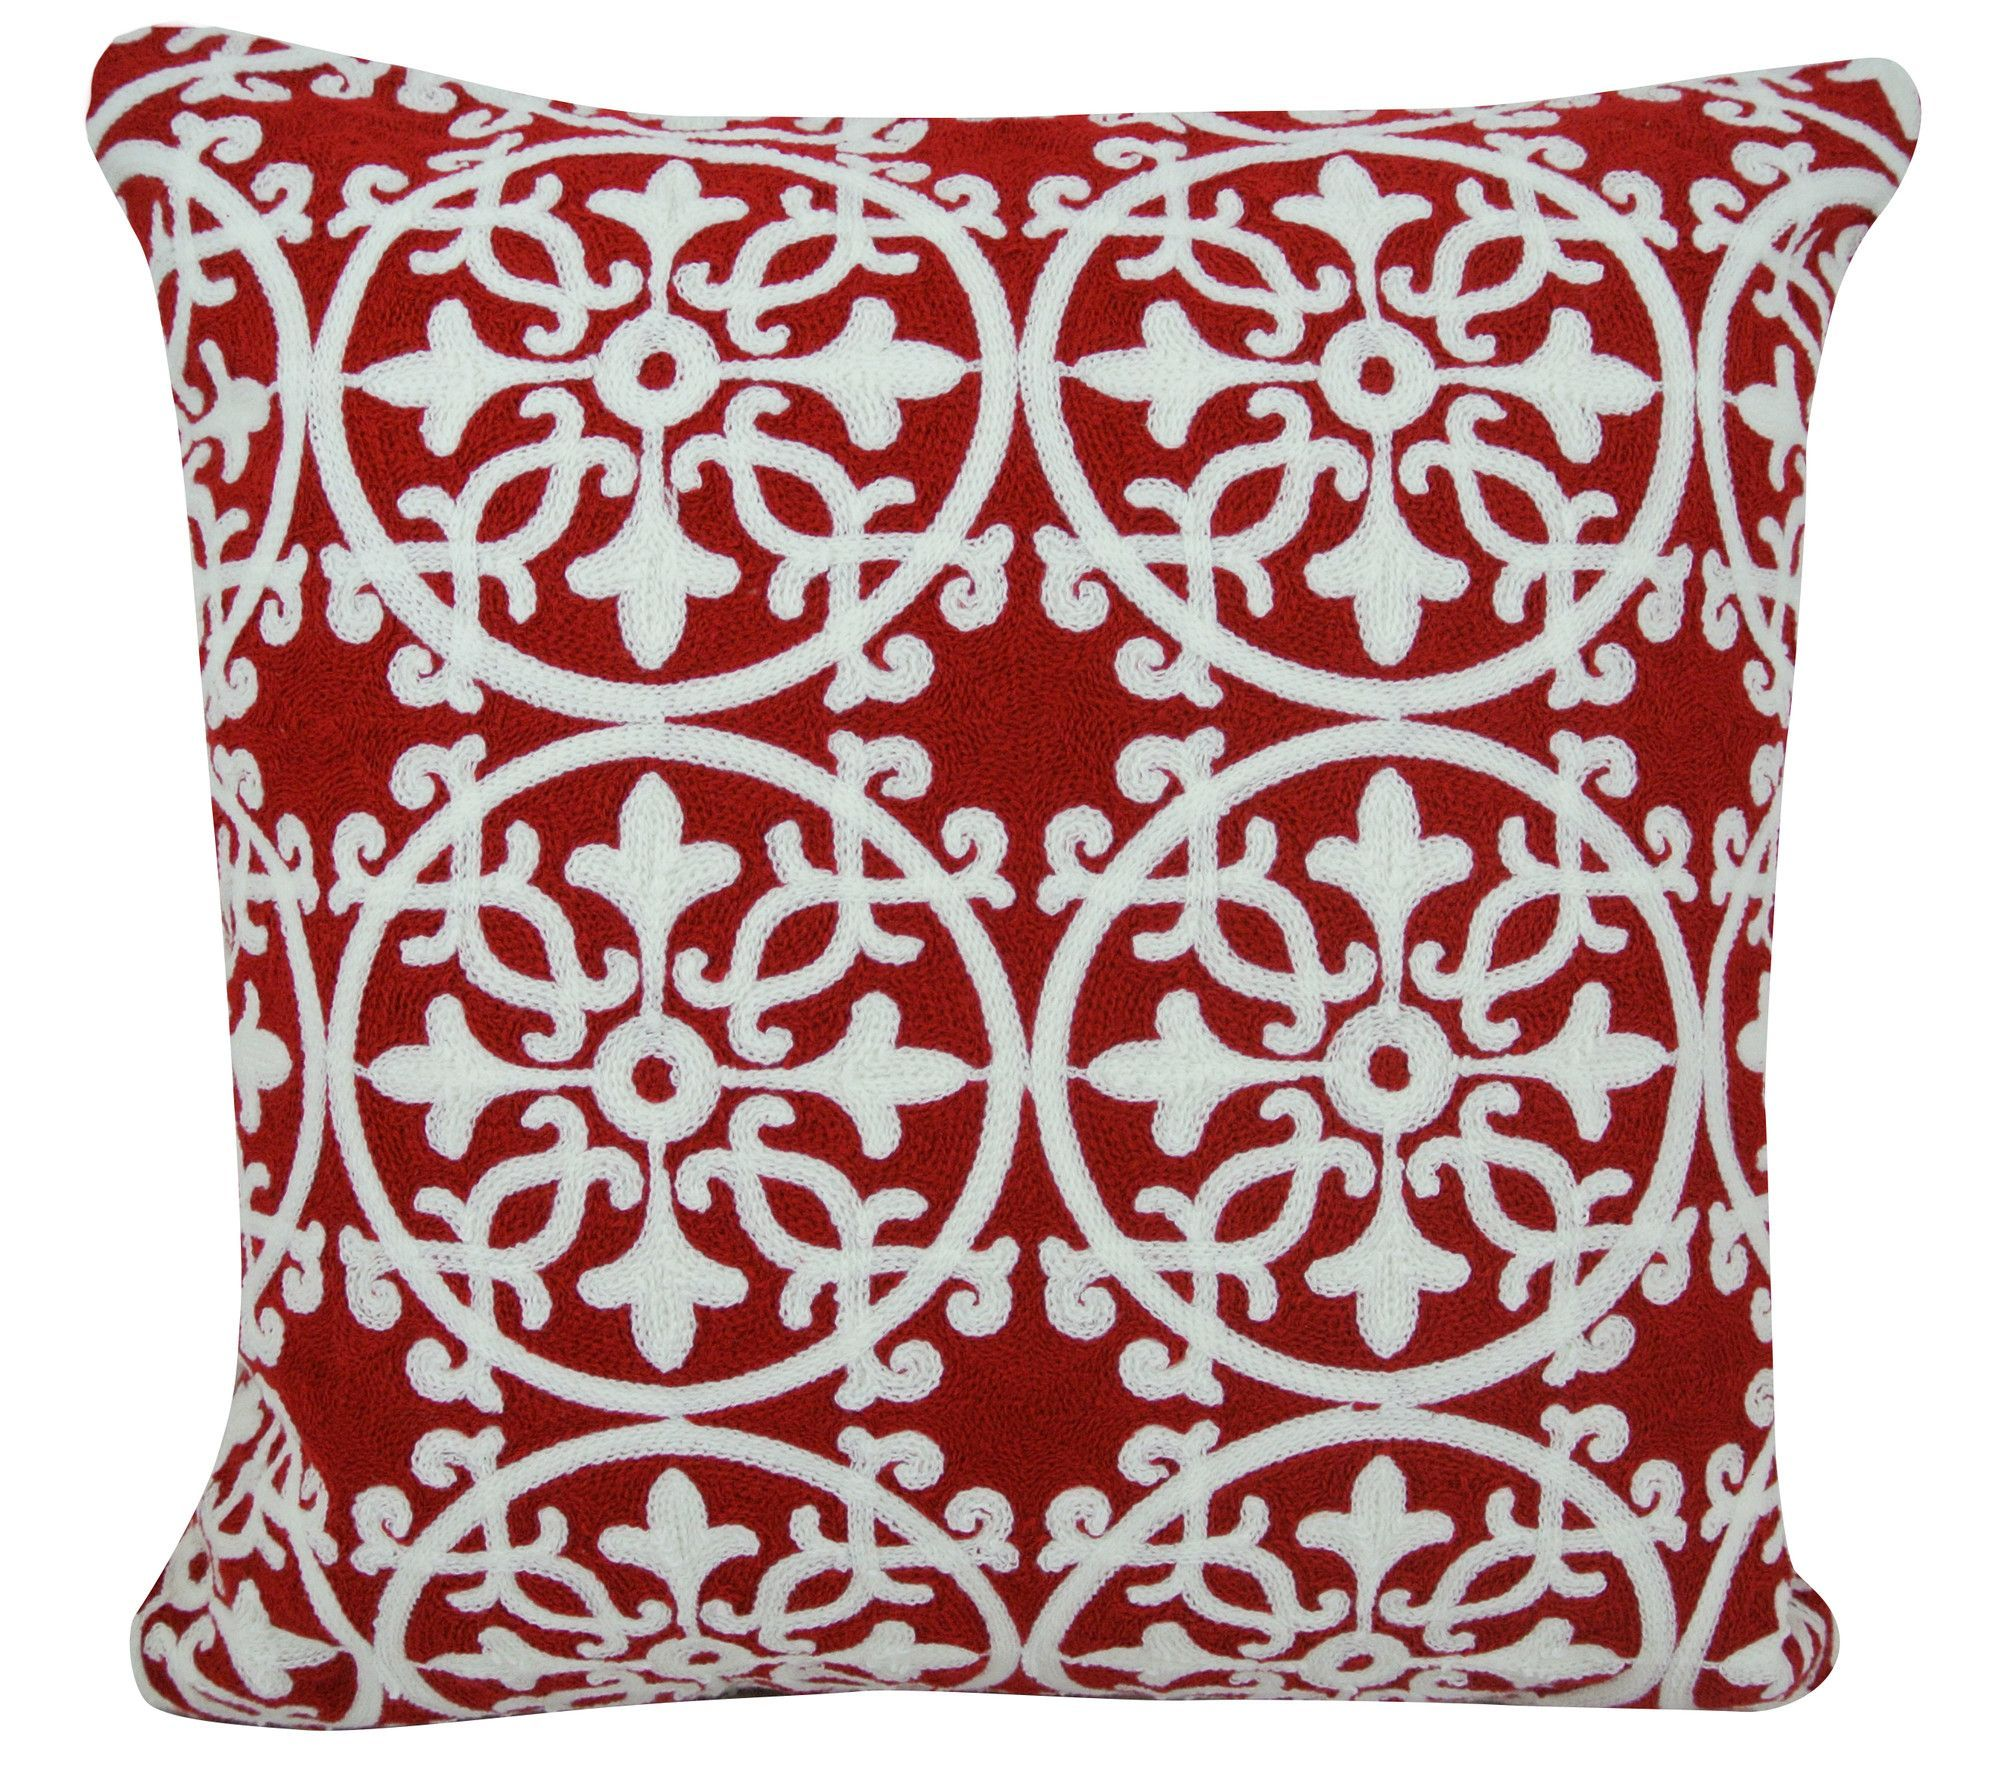 Artistic Linen Licia Decorative Embroidered Throw Pillow